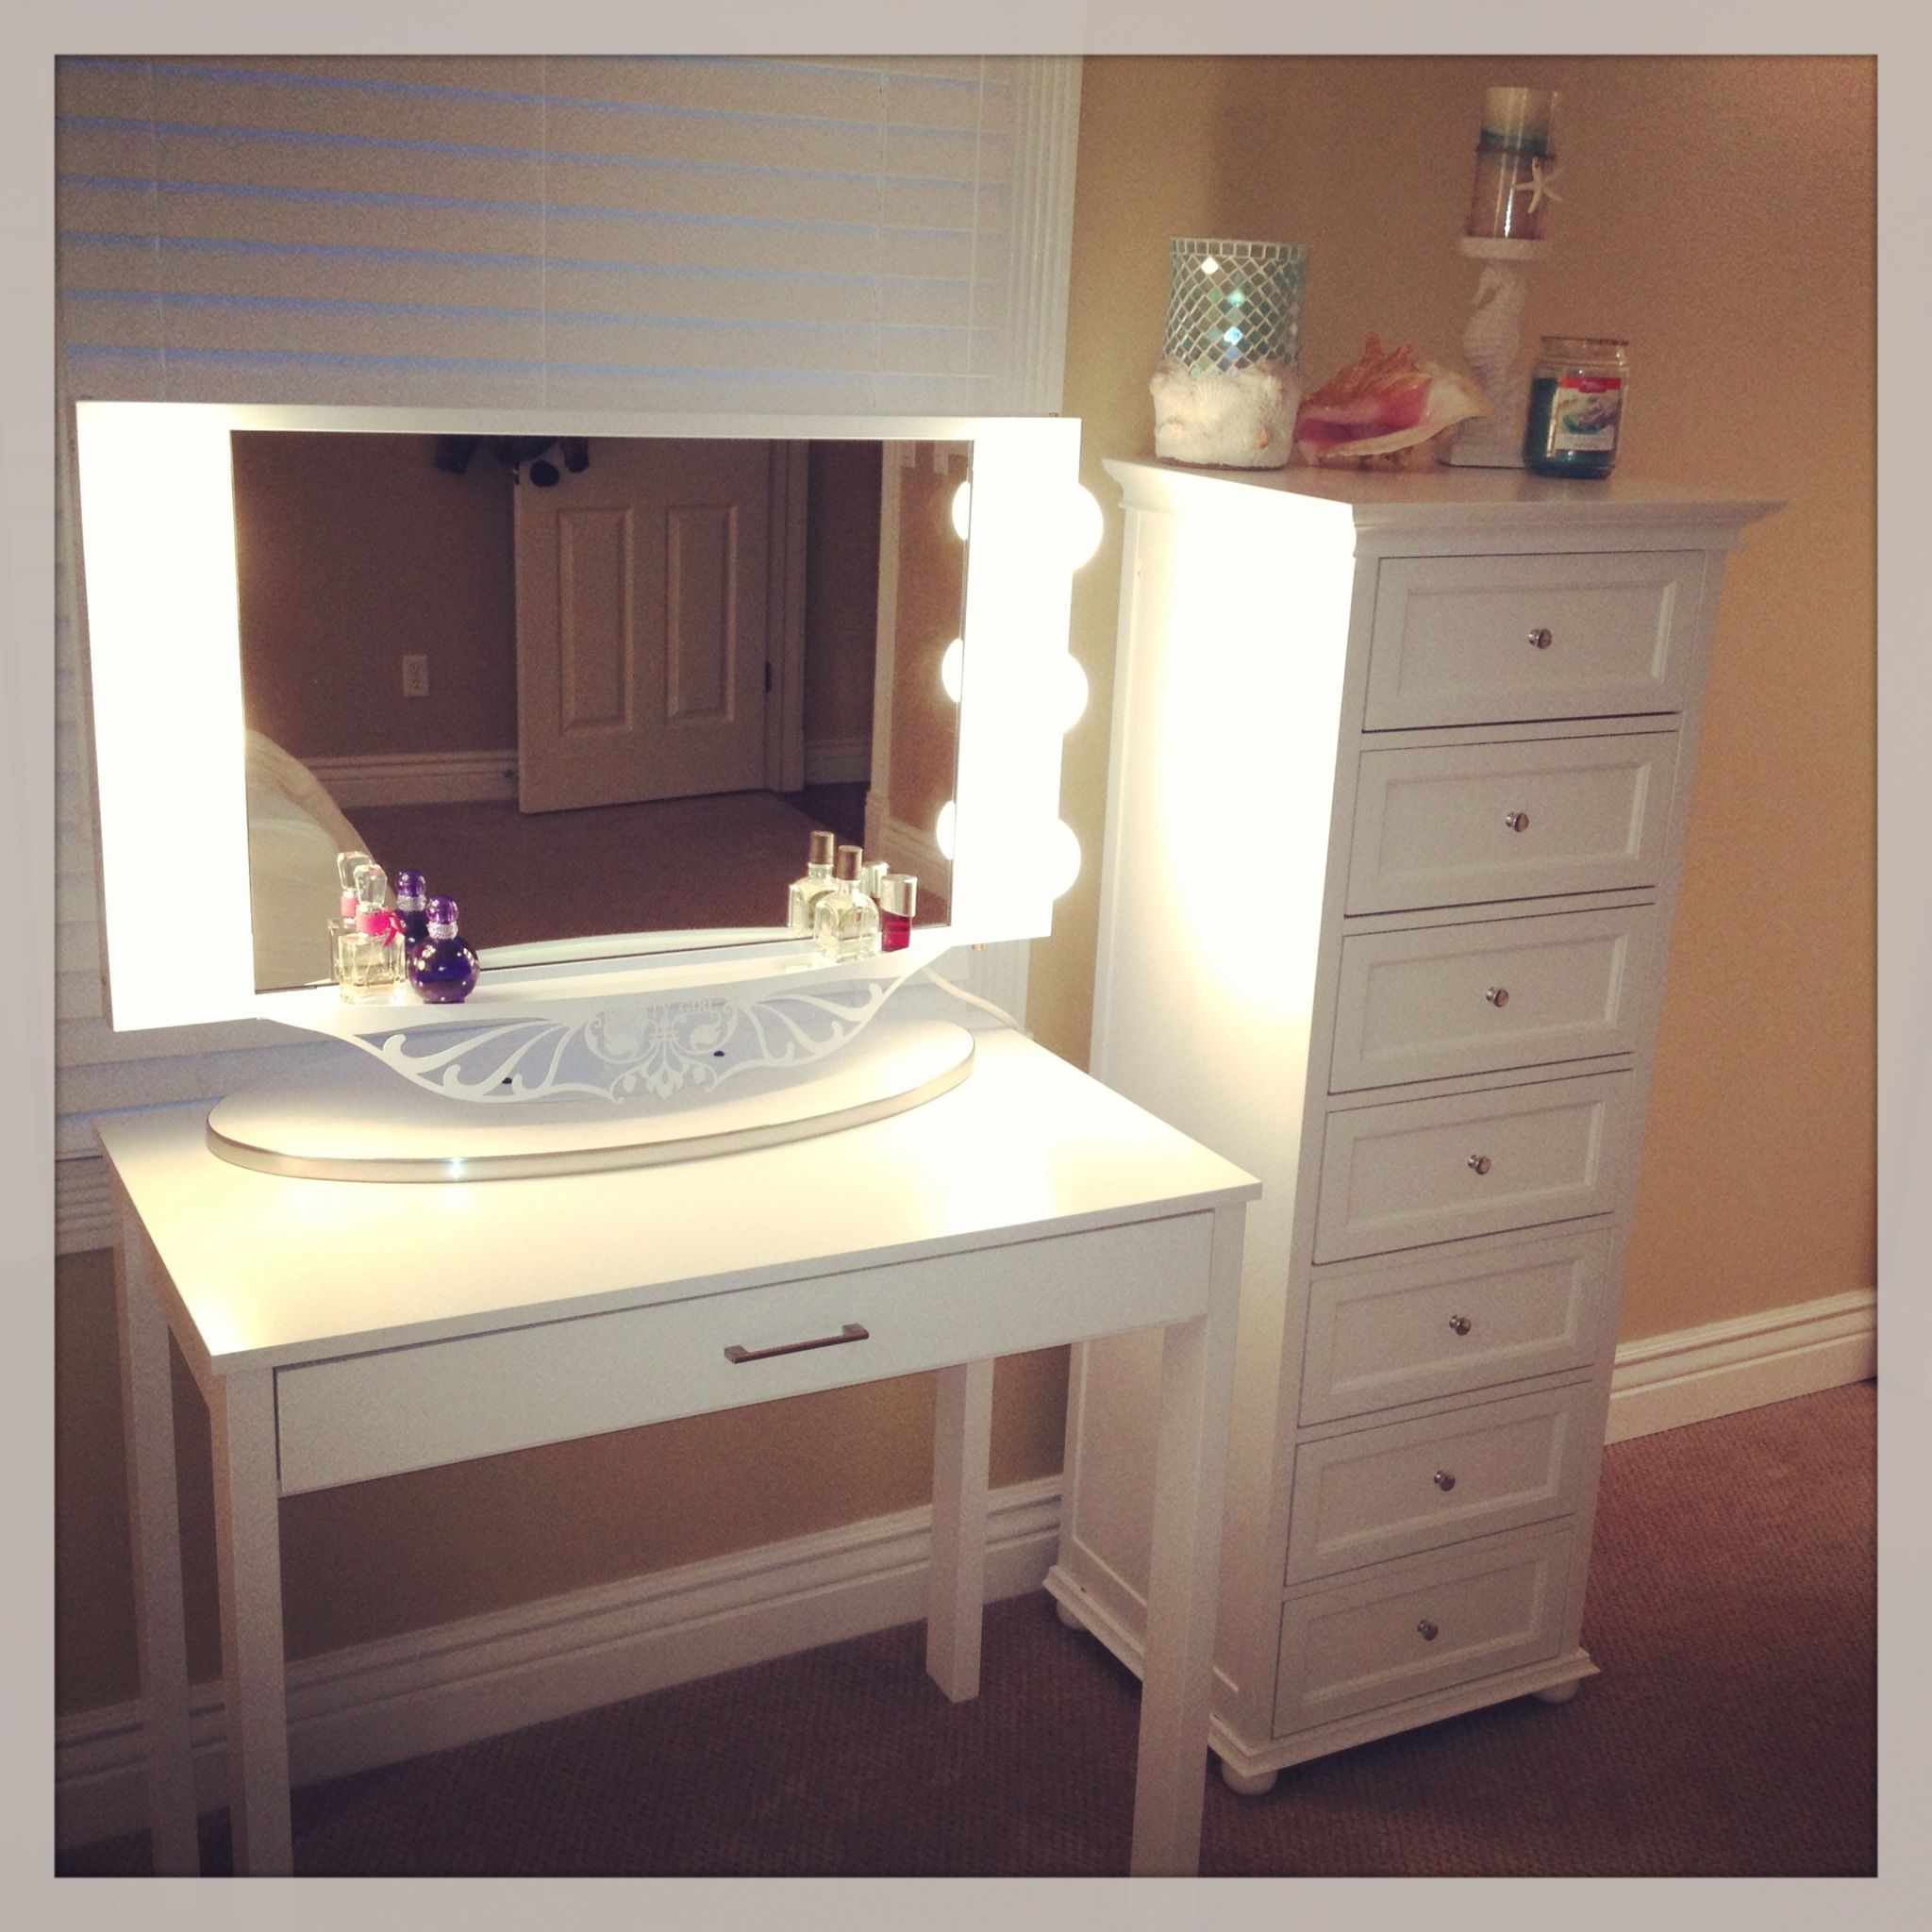 Home Ideas. Makeup Vanity For A Small Area   Desk From Target   Drawers  From Home Decorators   Mirror From Vanity Girl.